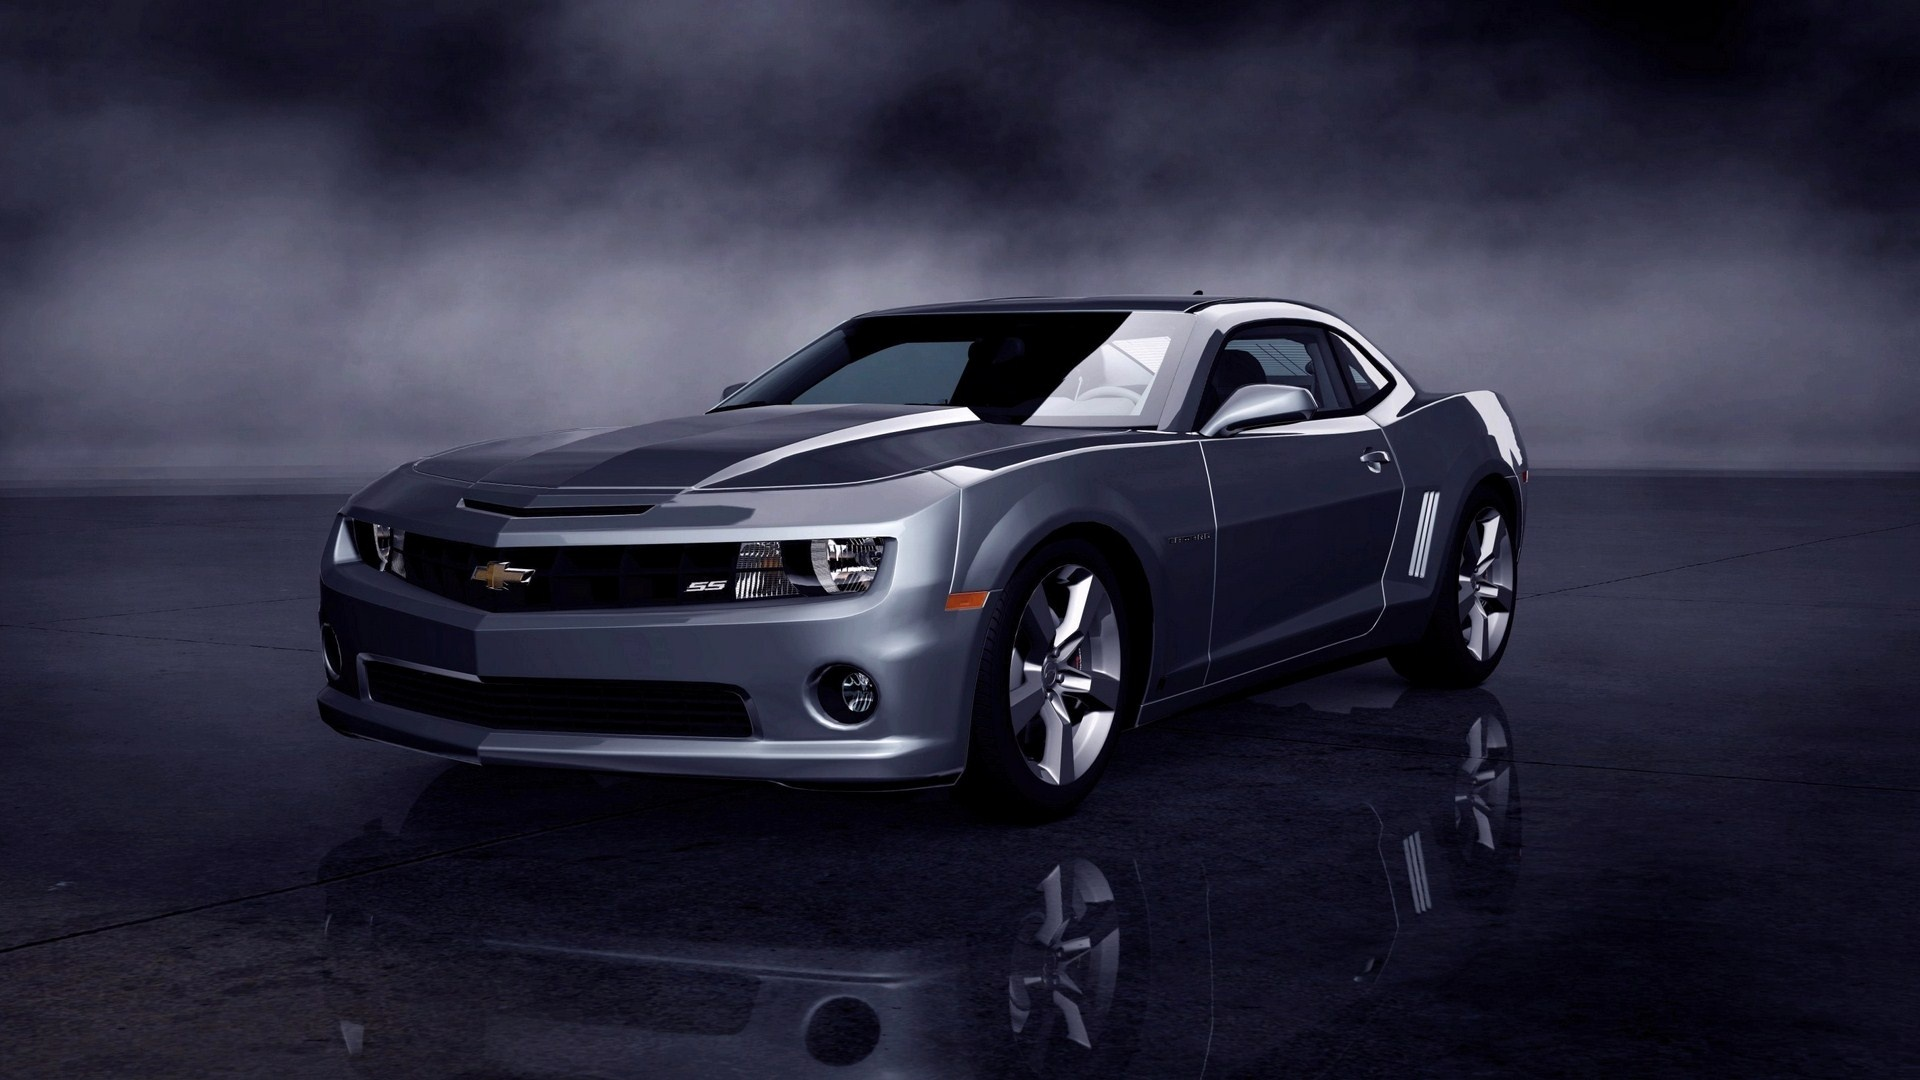 camaro ss 2012 high definition wallpapers hd wallpapers. Black Bedroom Furniture Sets. Home Design Ideas